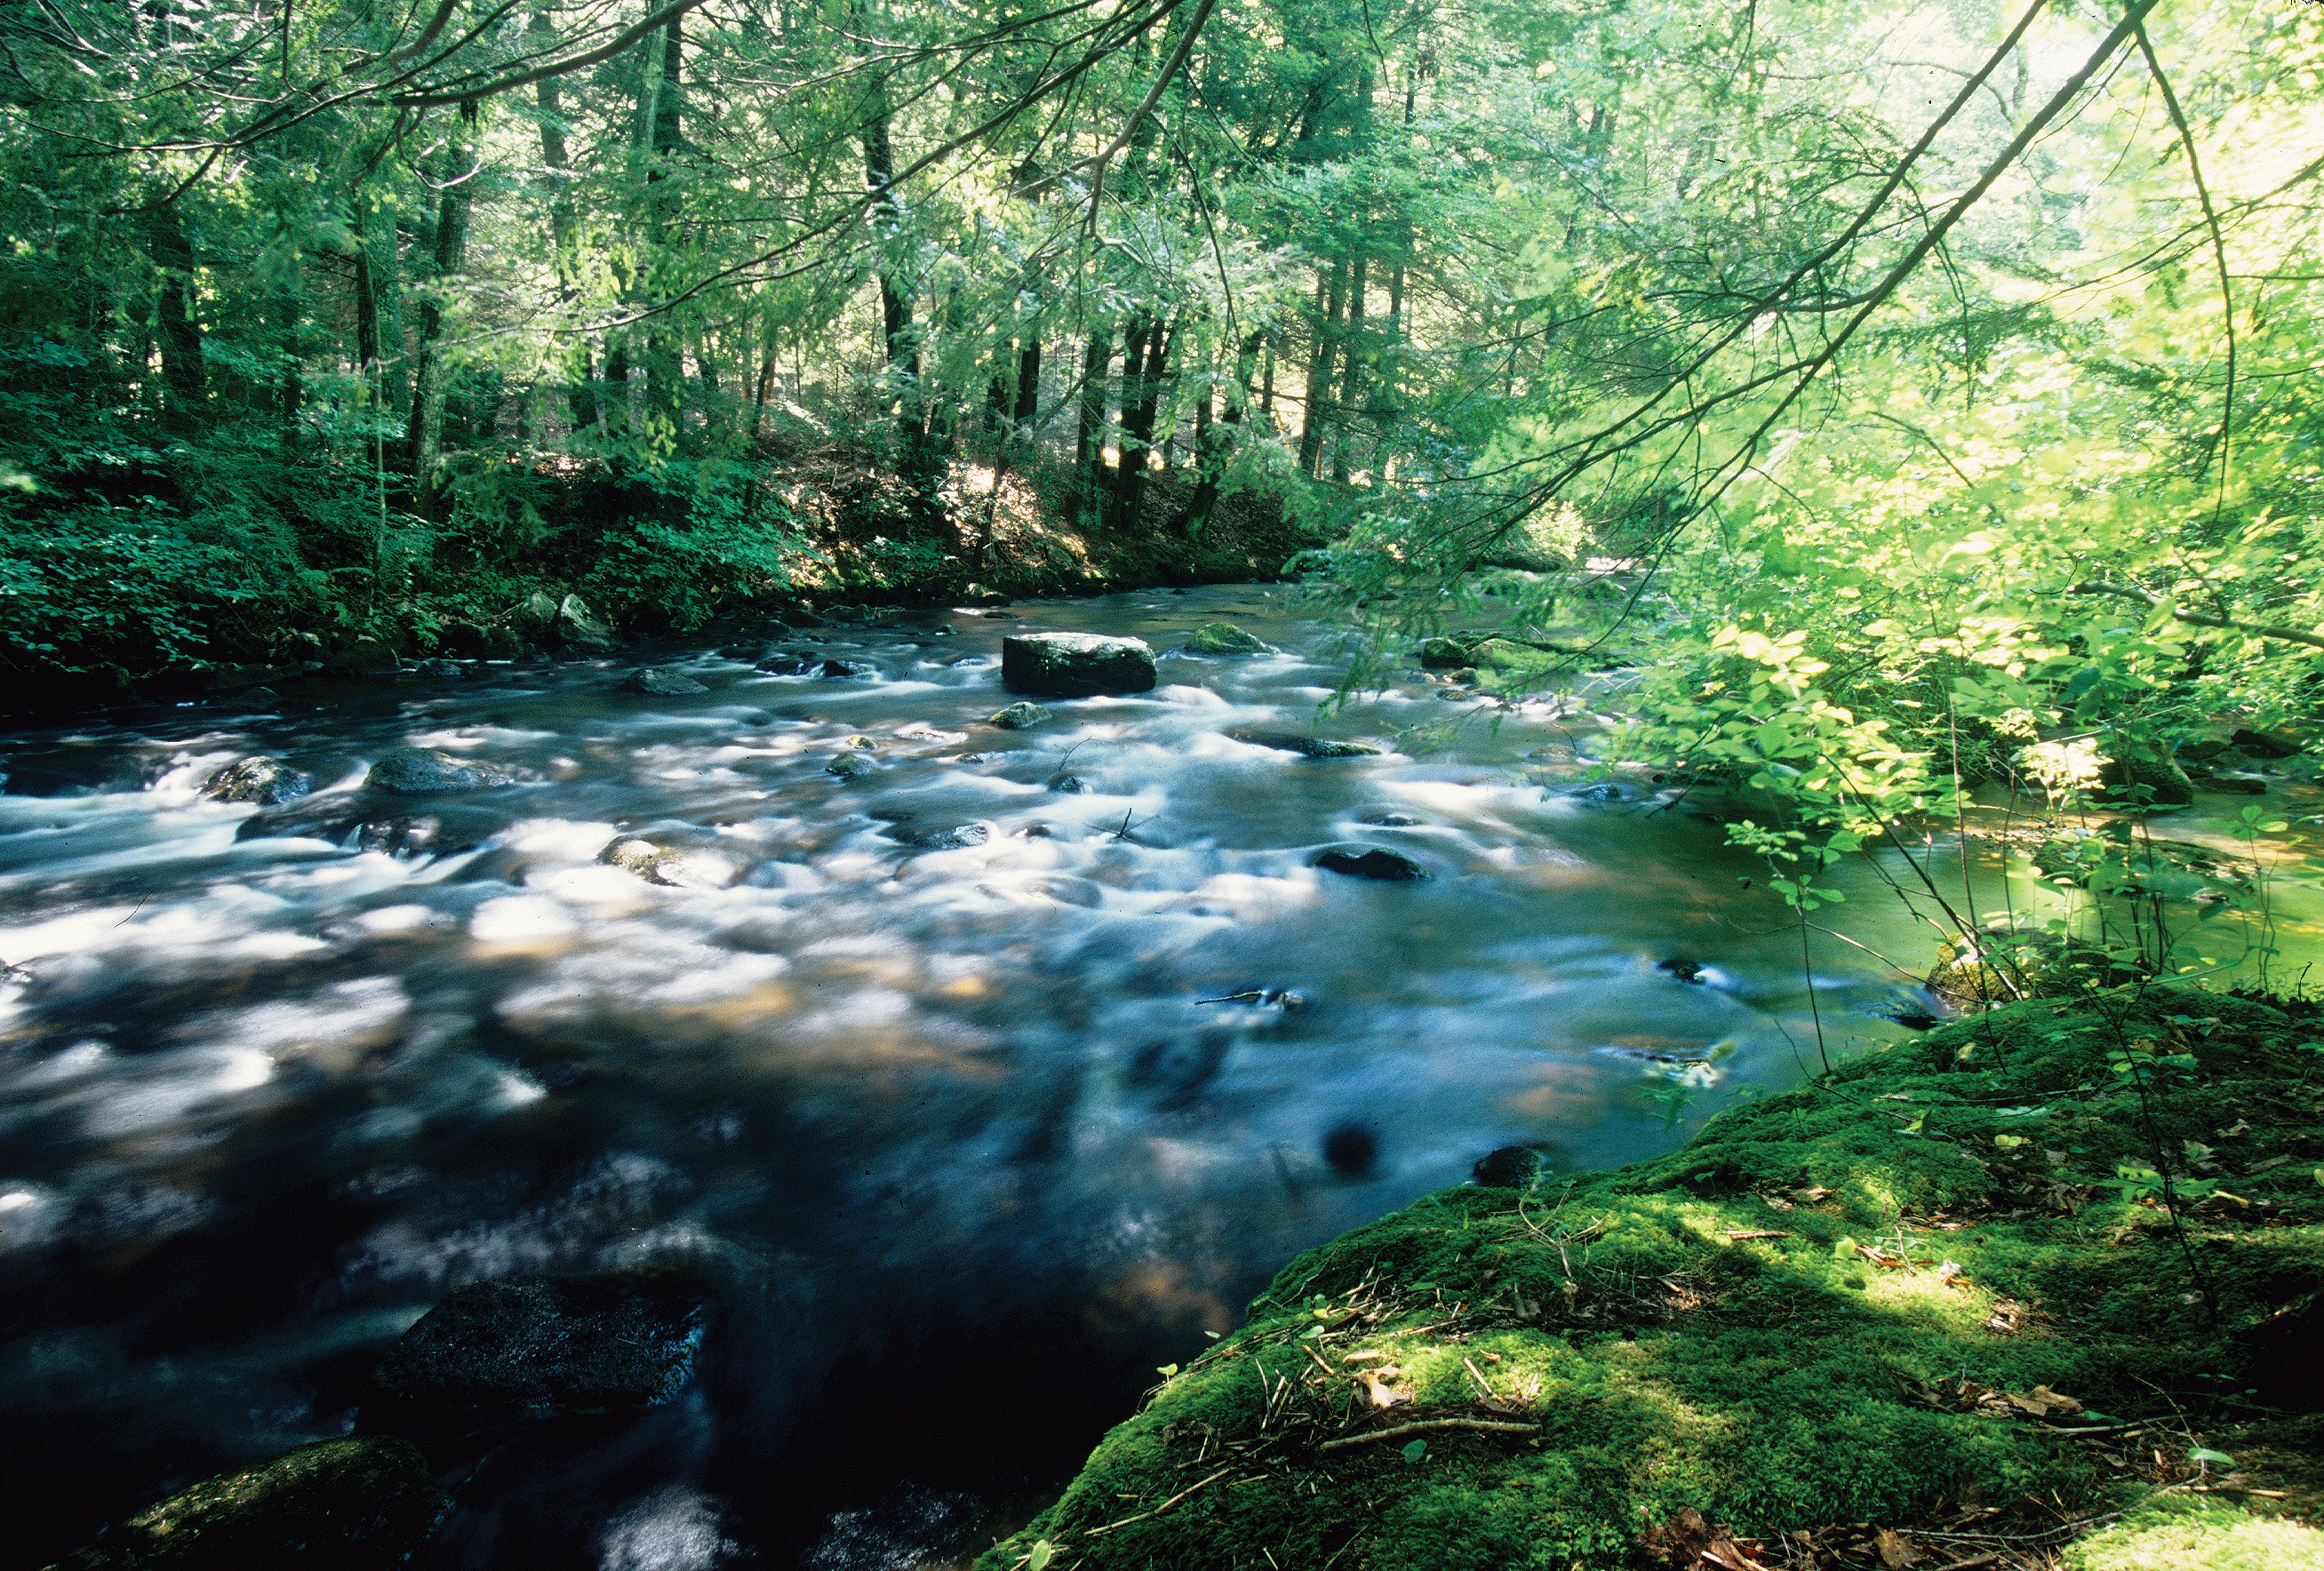 Quaboag River - Quinebaug Woods - Long's Jewelers Hike Proposal